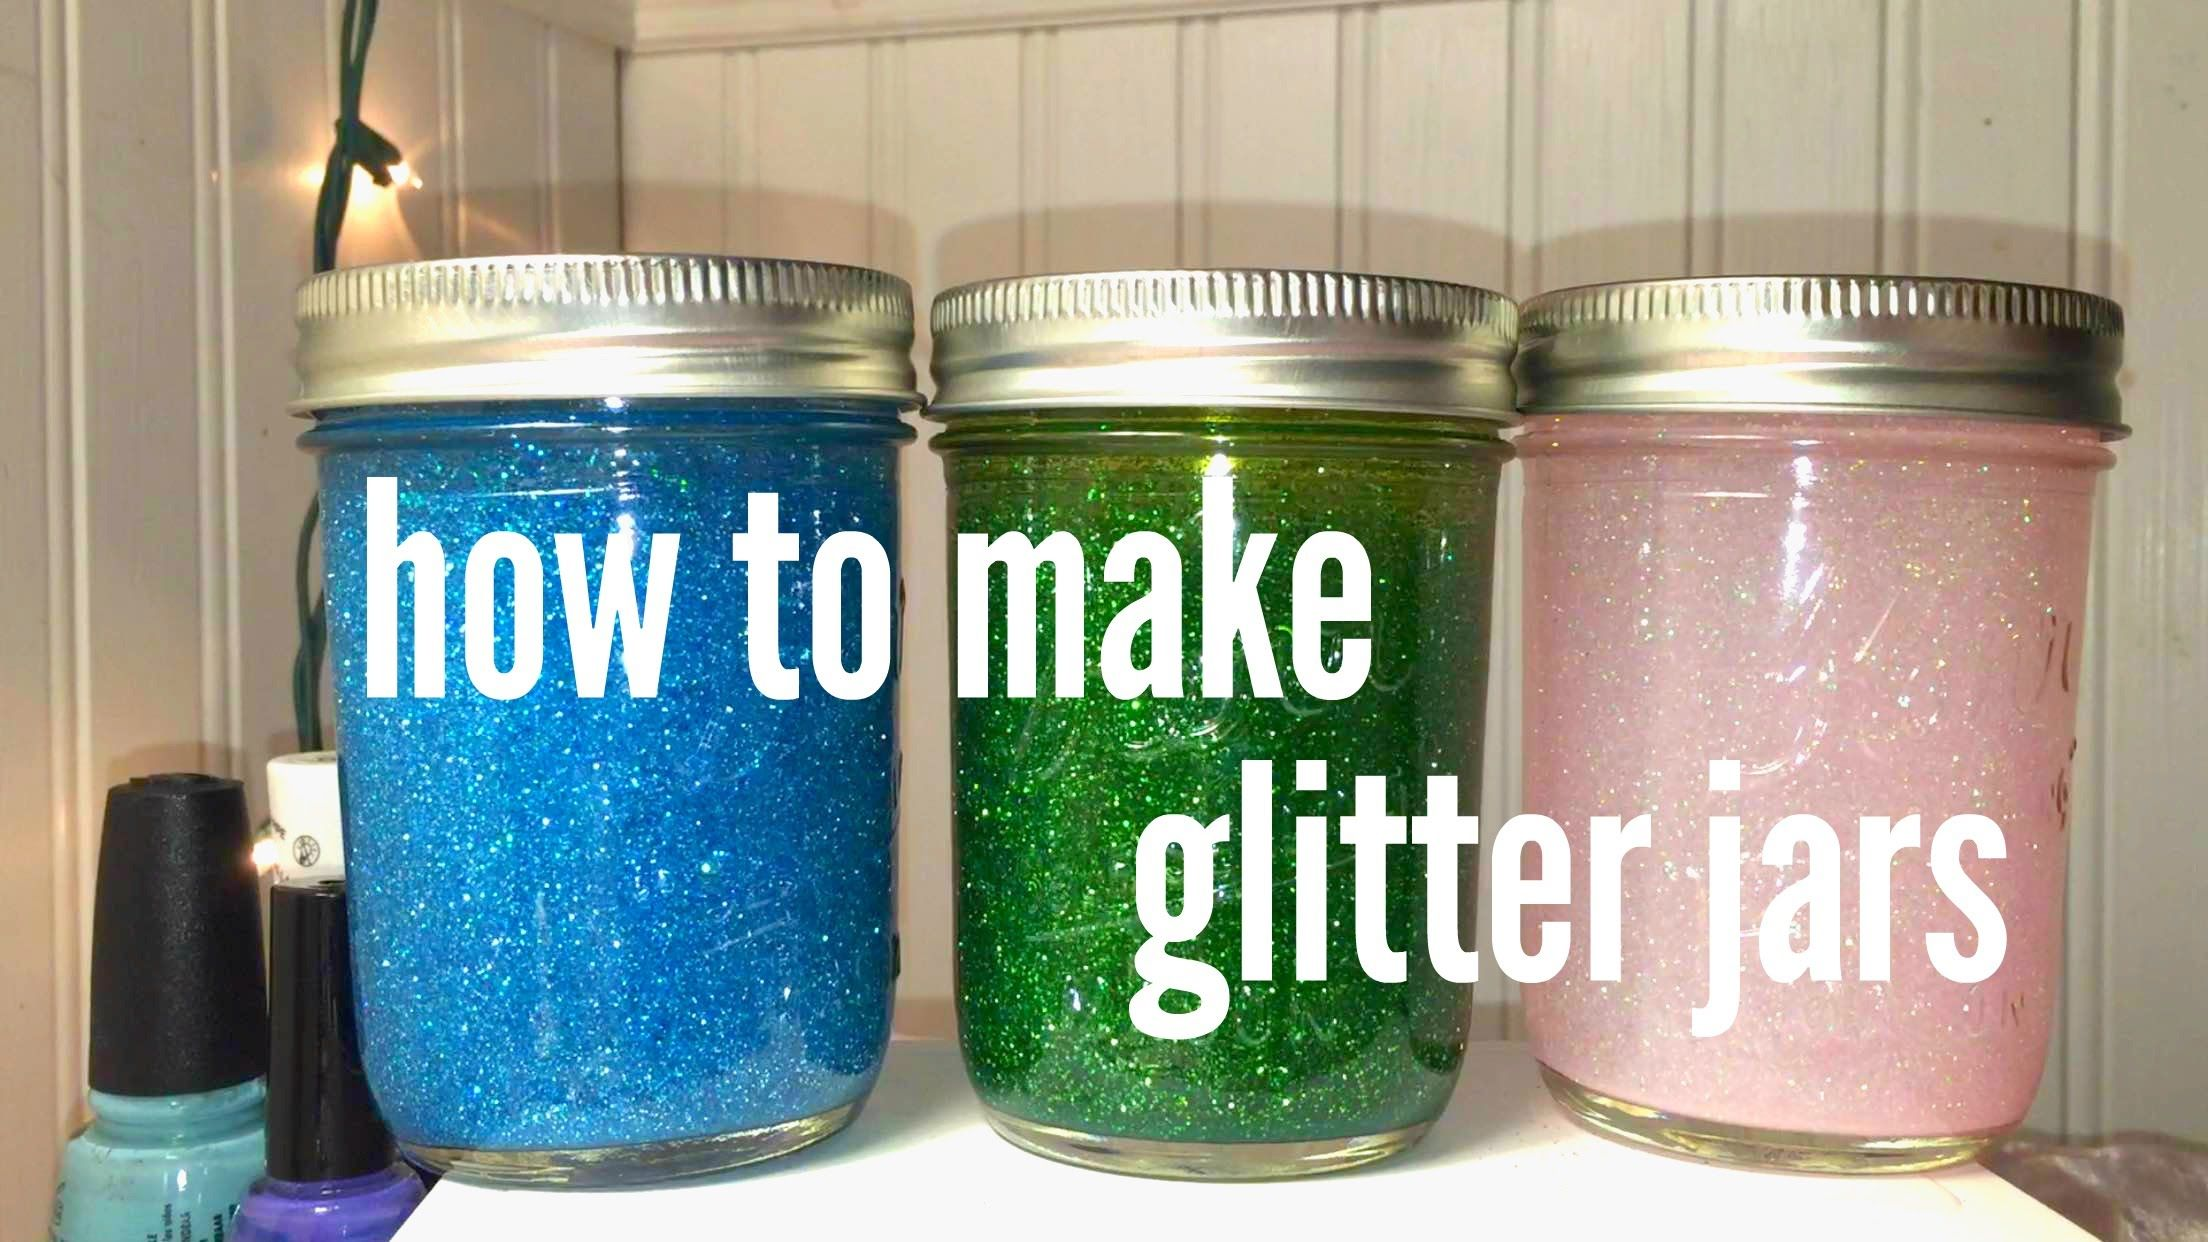 Watch How to Make Glitter video